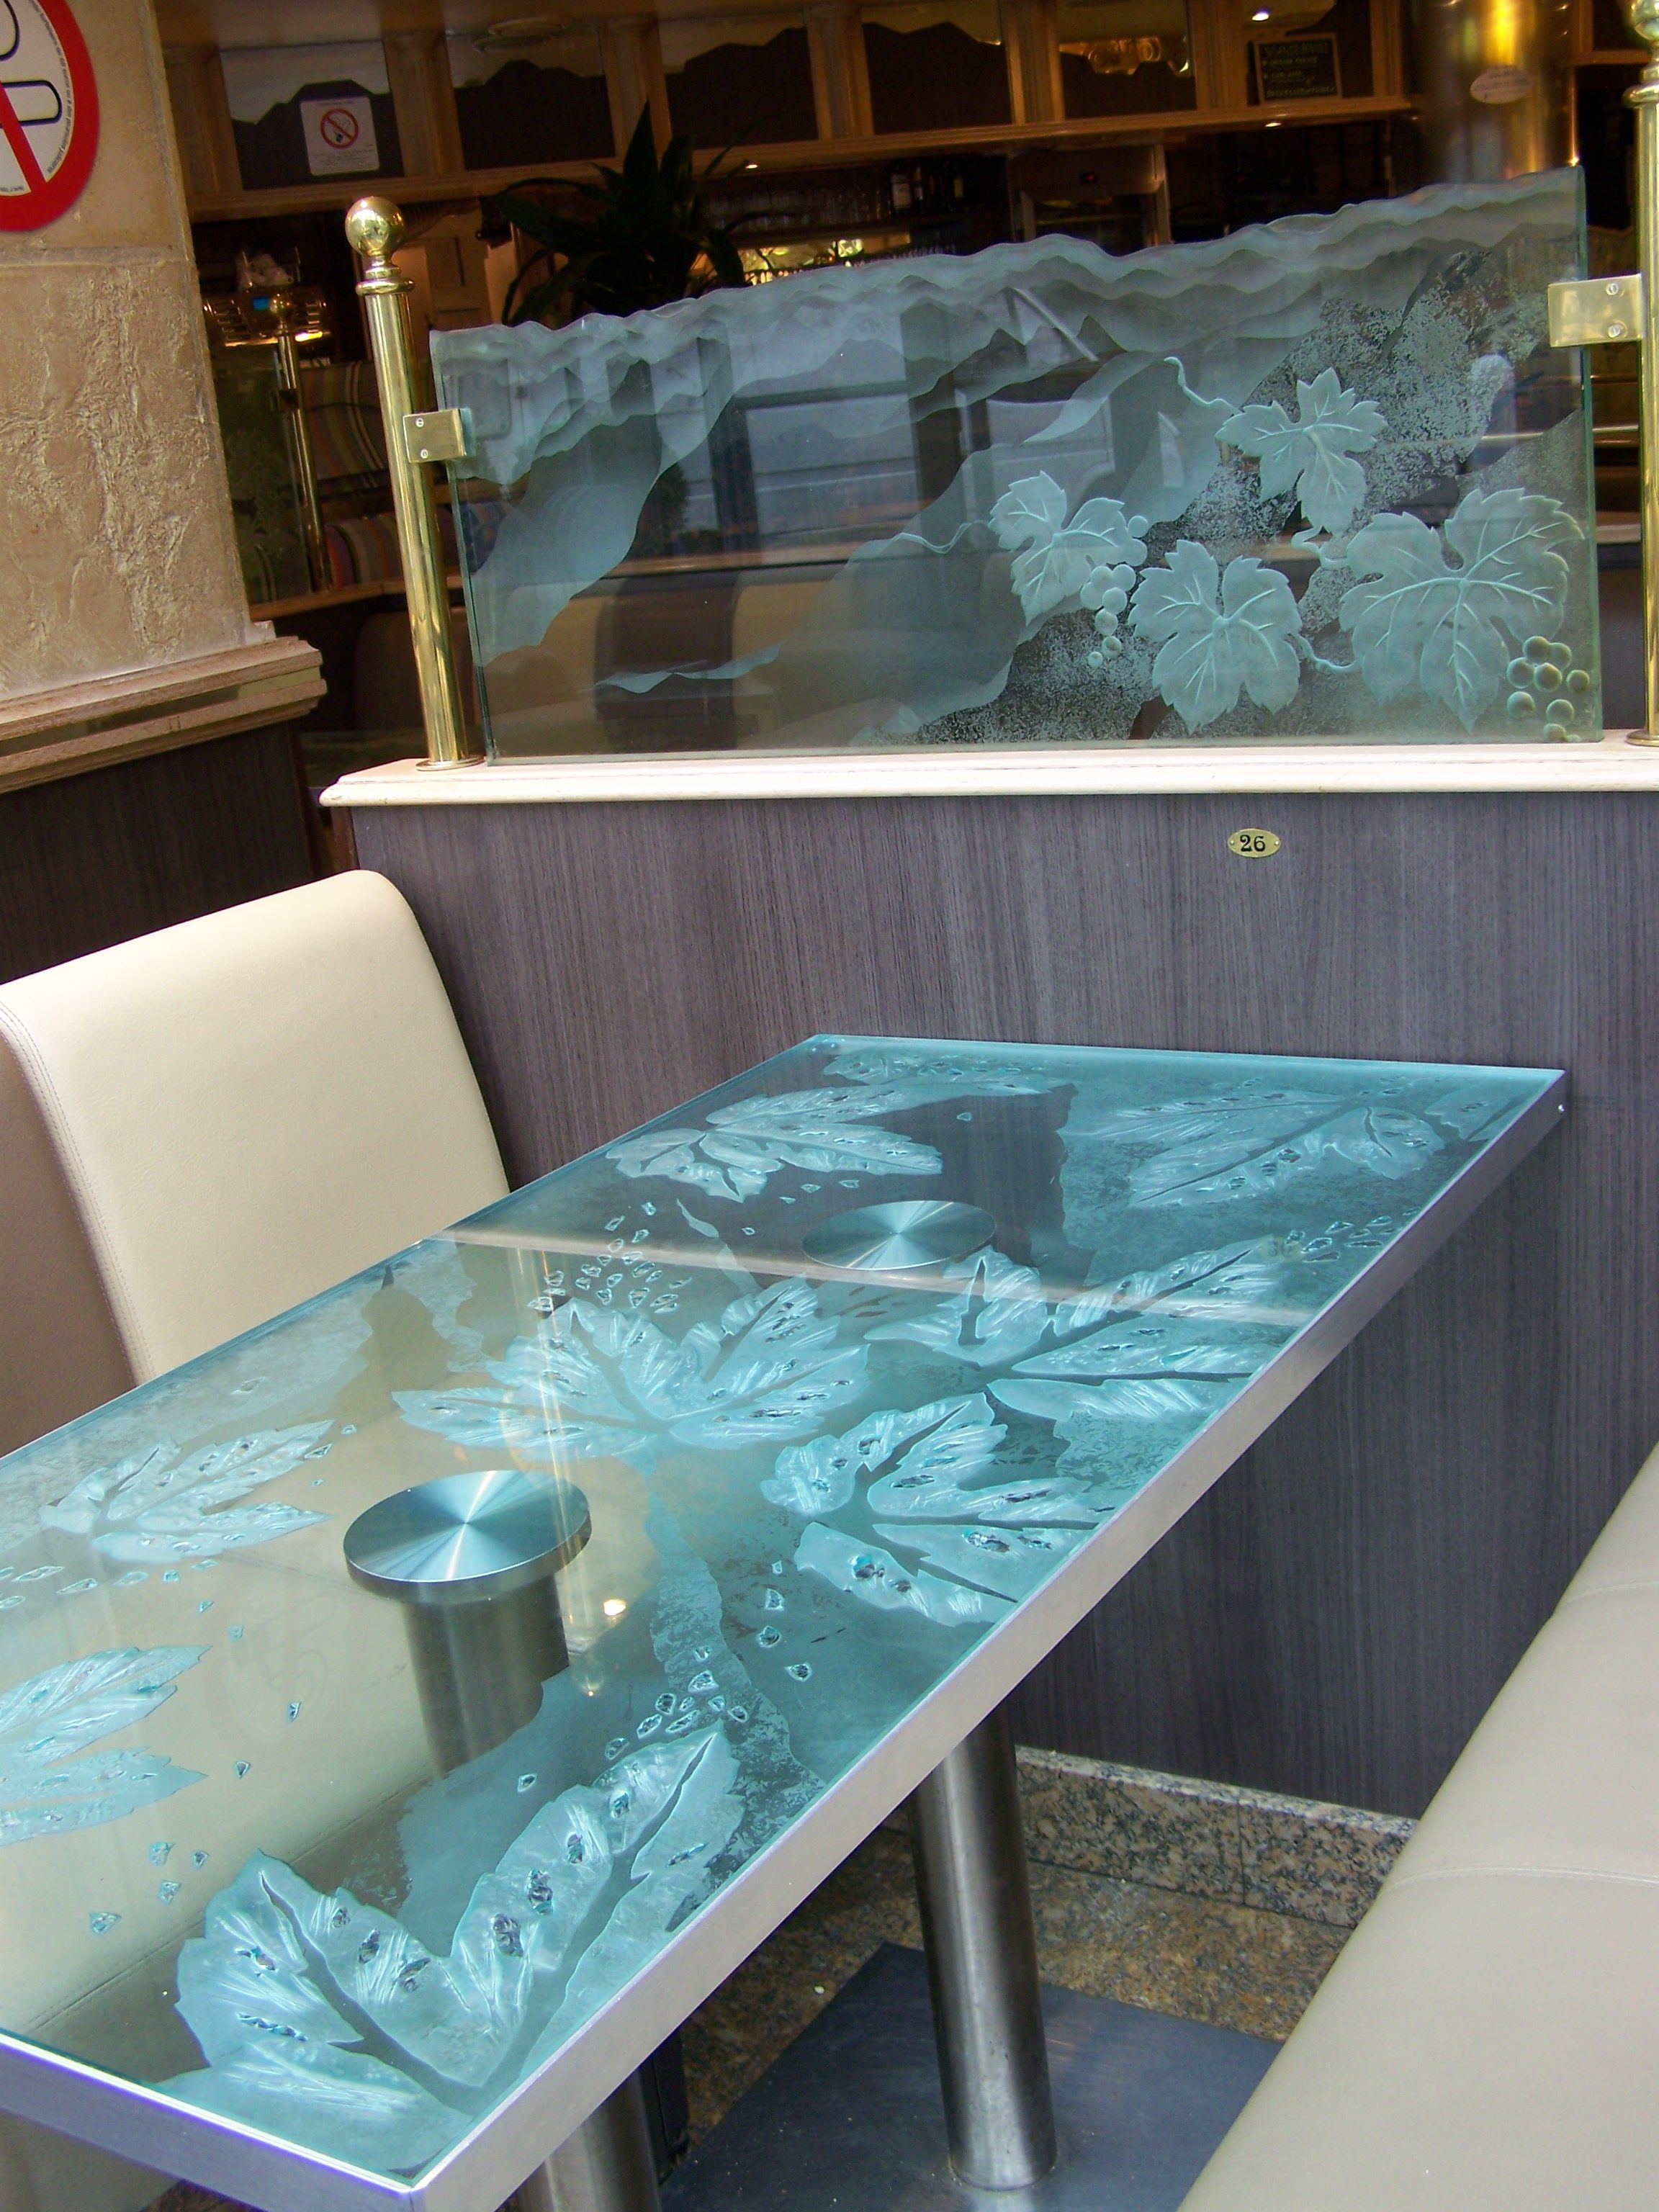 Sandblasted Carved Glass Tabletop And Railing By France Vitrail  International Http://www.